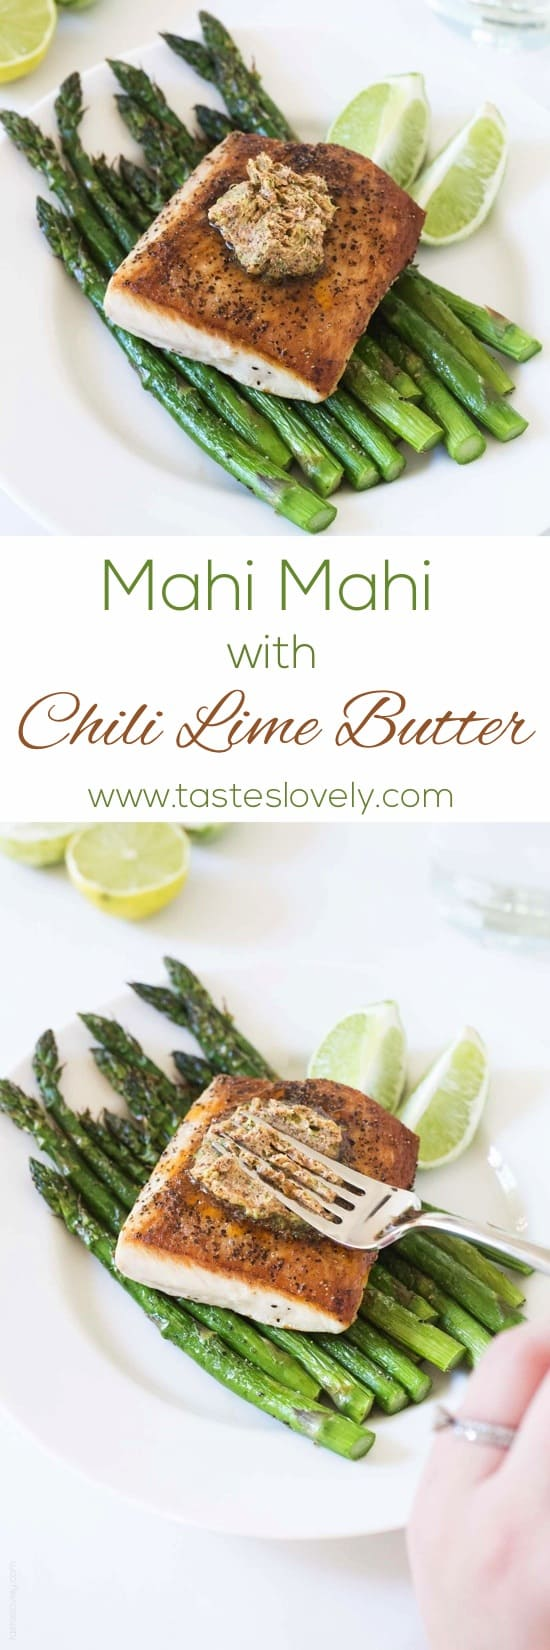 Mahi Mahi with Chili Lime Butter - Tastes Lovely